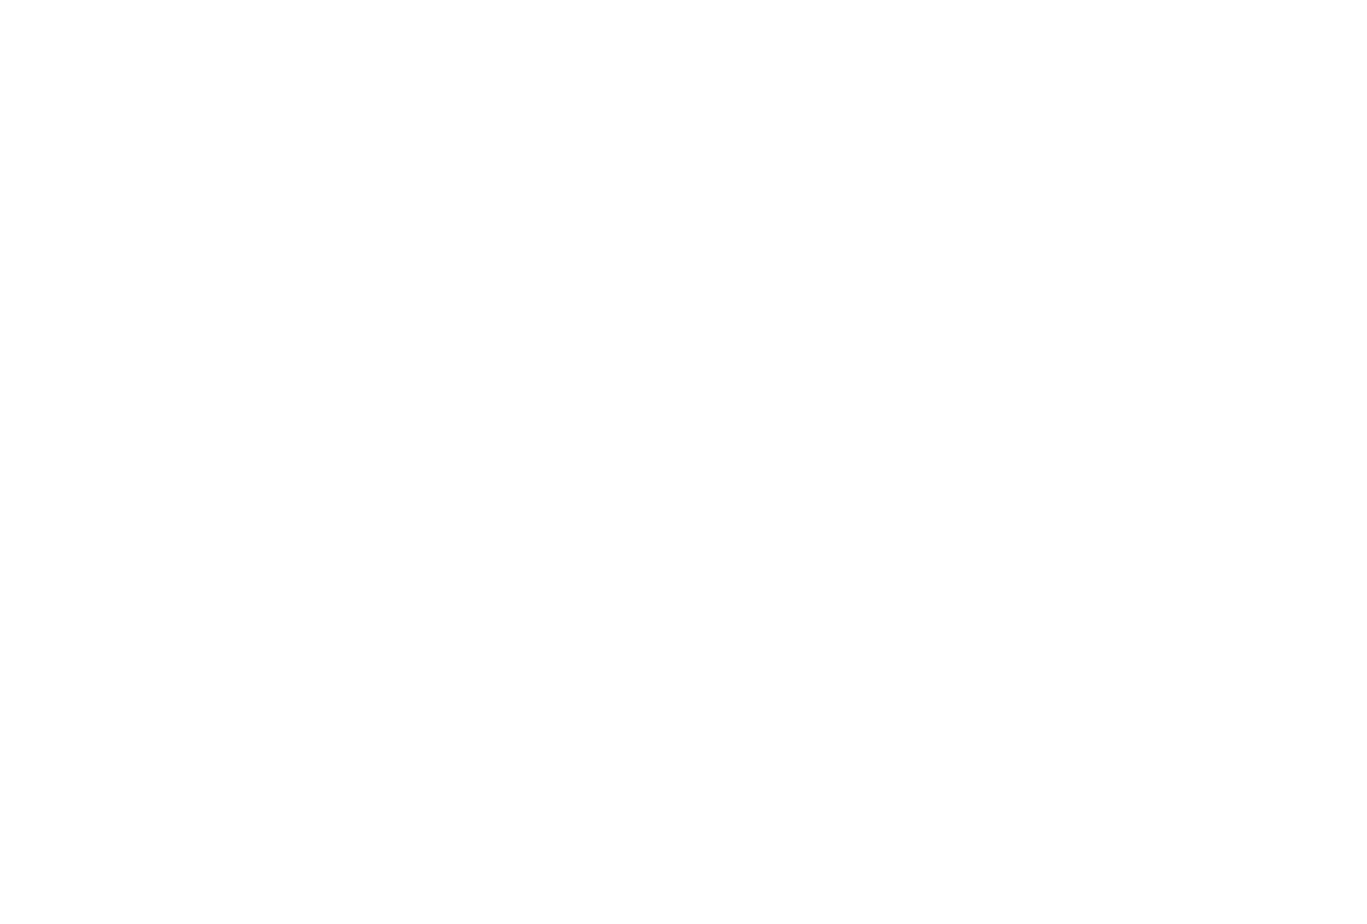 DJ Dave Young logo - Storm DJs London